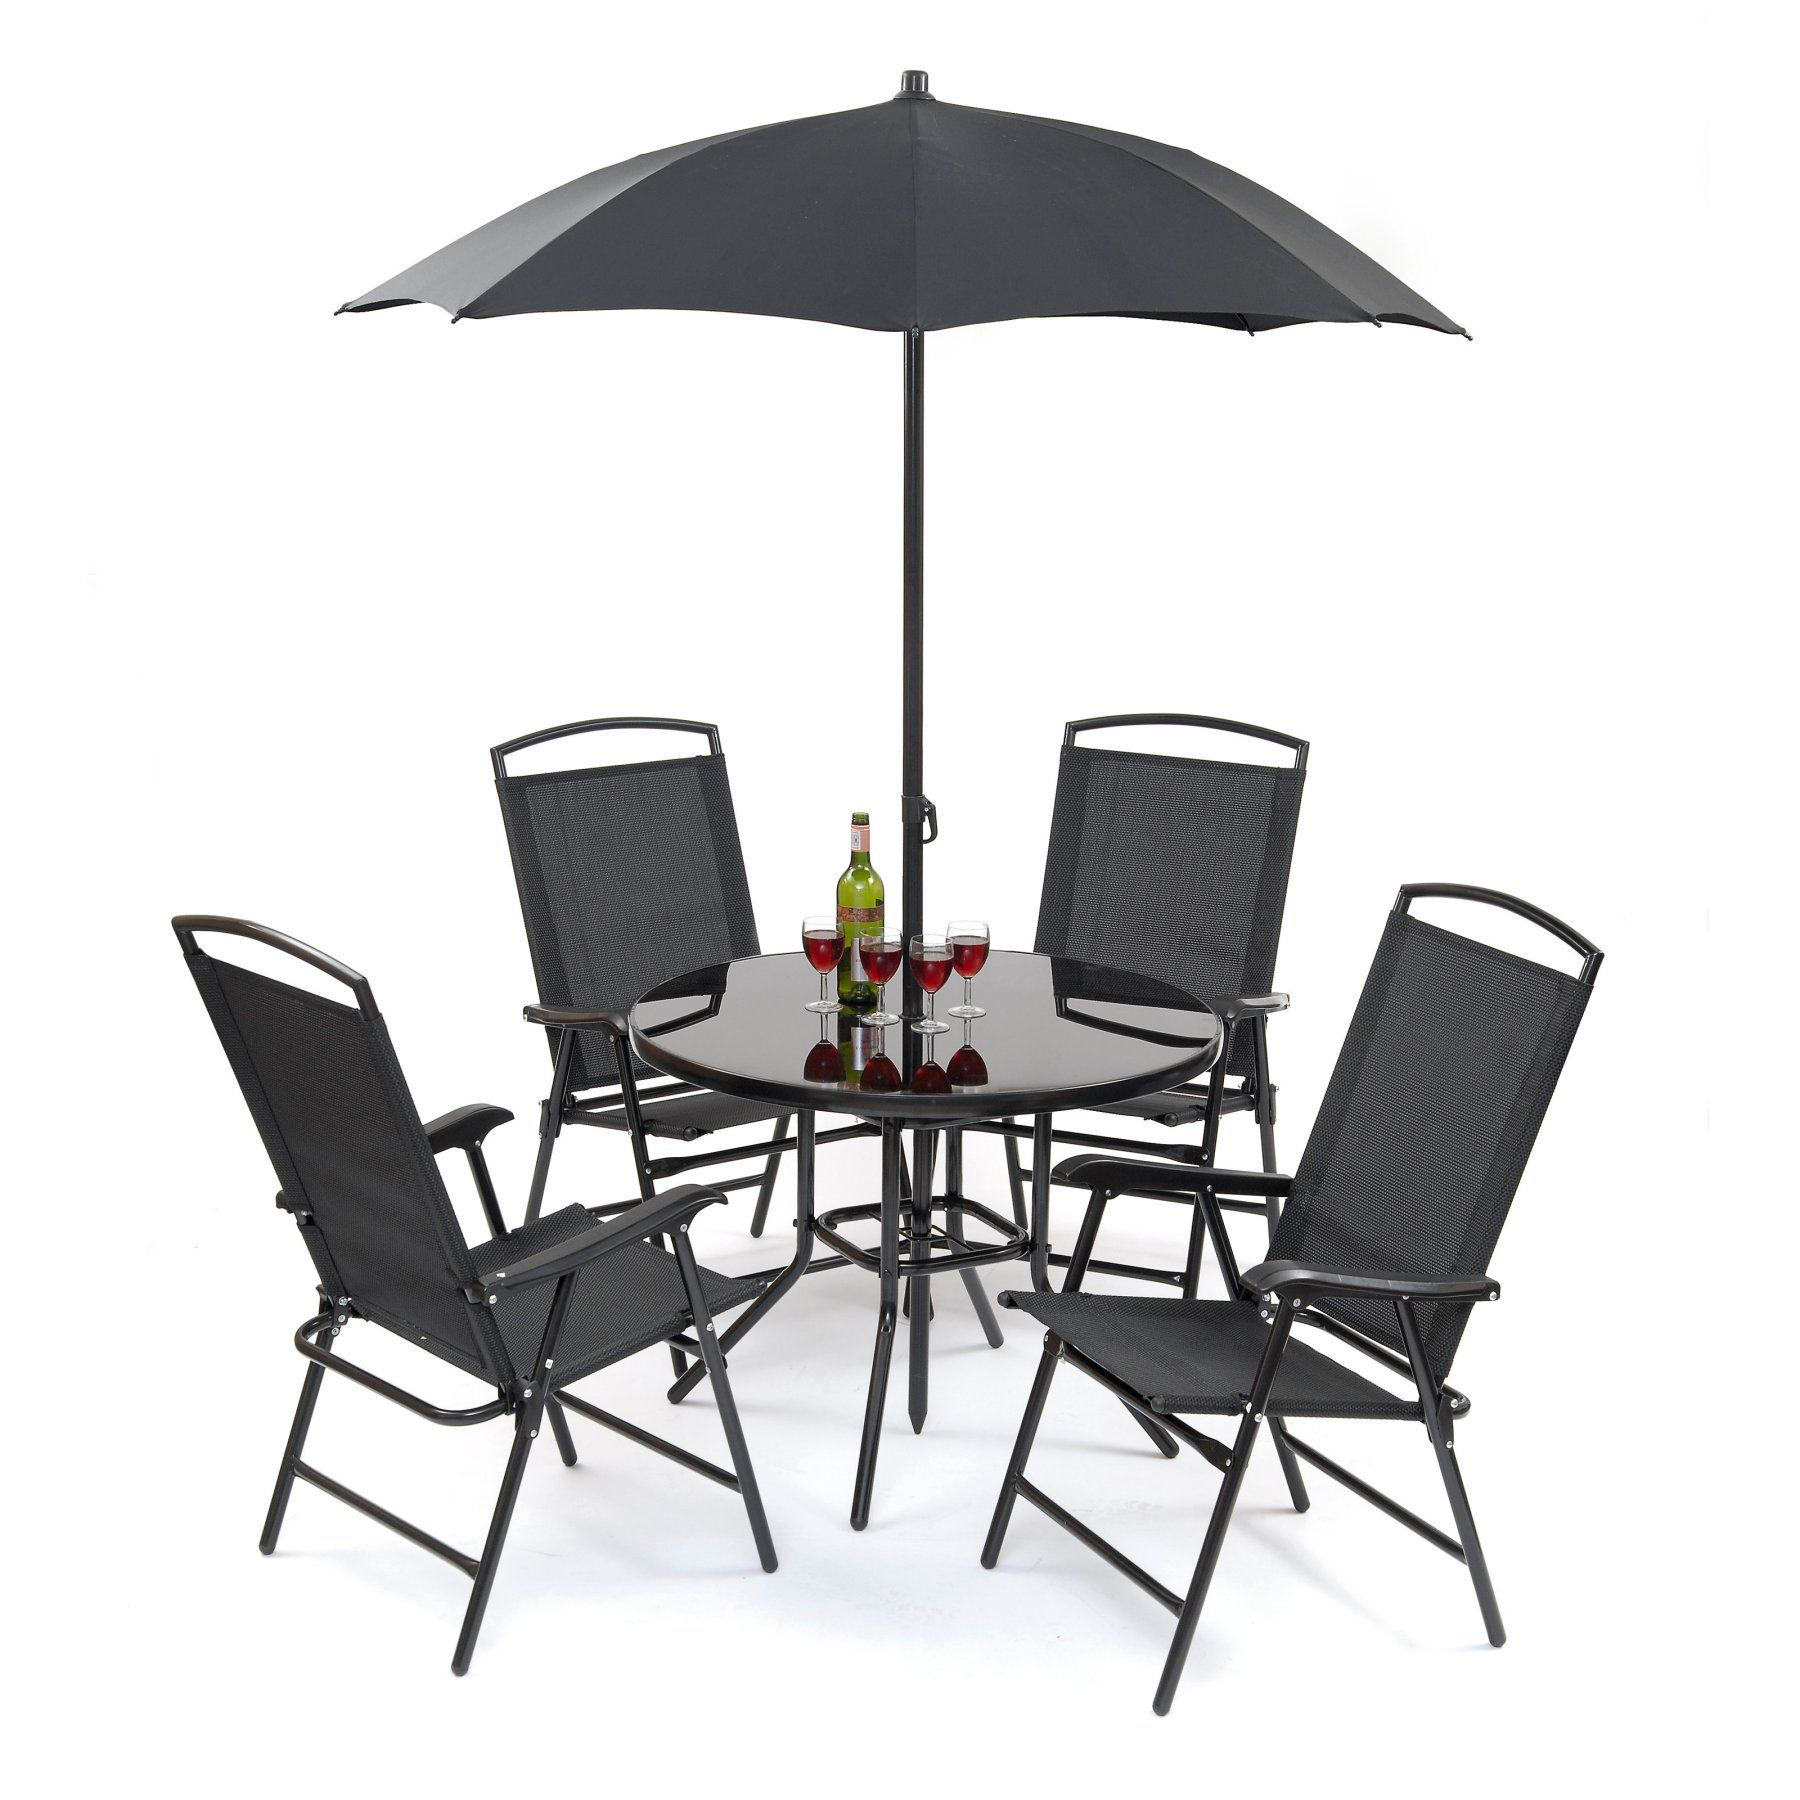 Suntime Outdoor Living Havana Black Steel 6 Piece Patio ... on Suntime Outdoor Living  id=55020